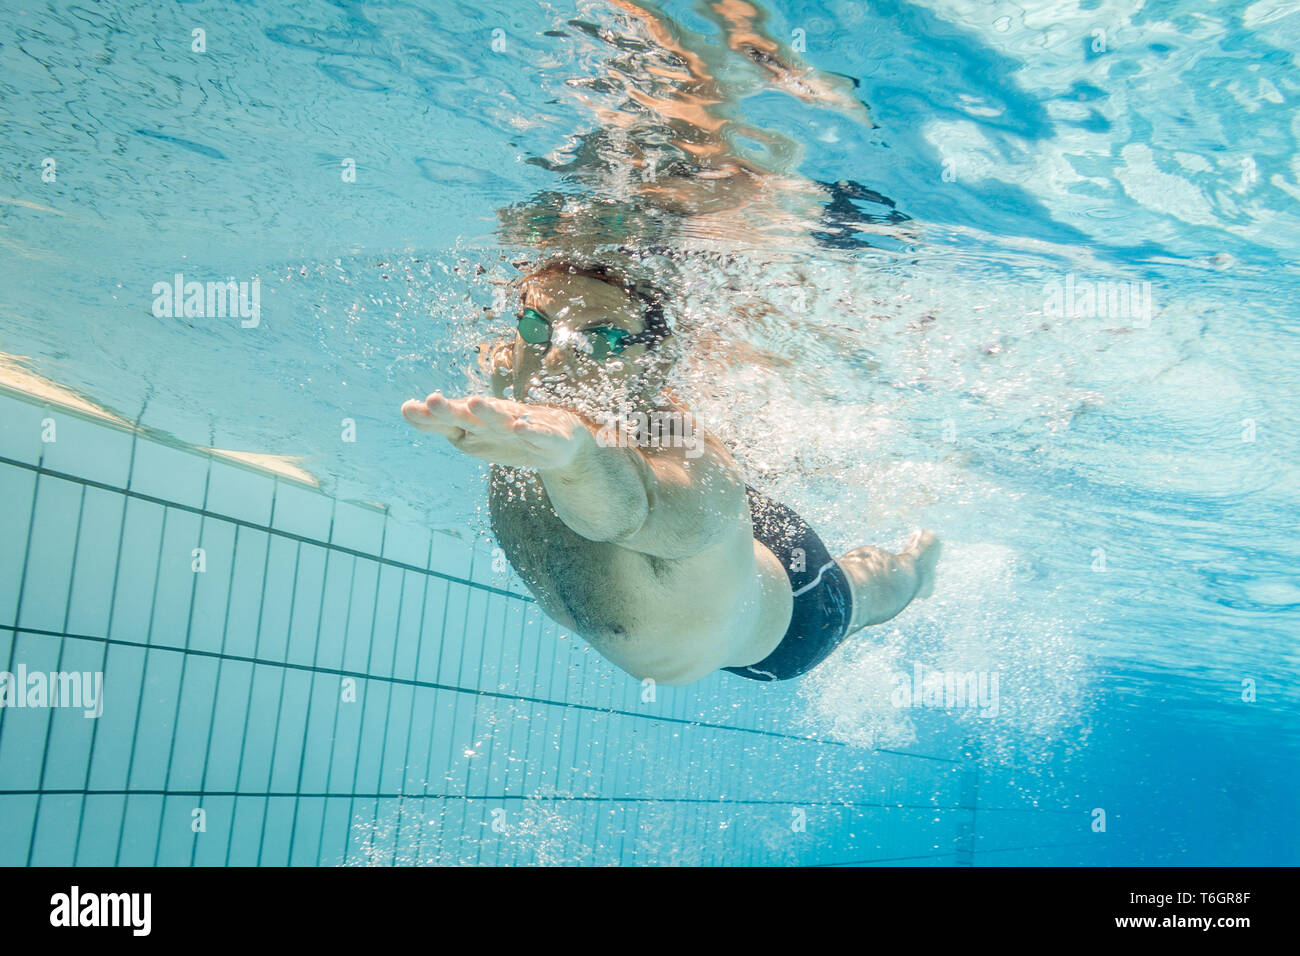 Male swimmer in the swimming pool.Underwater photo with copy space. Stock Photo